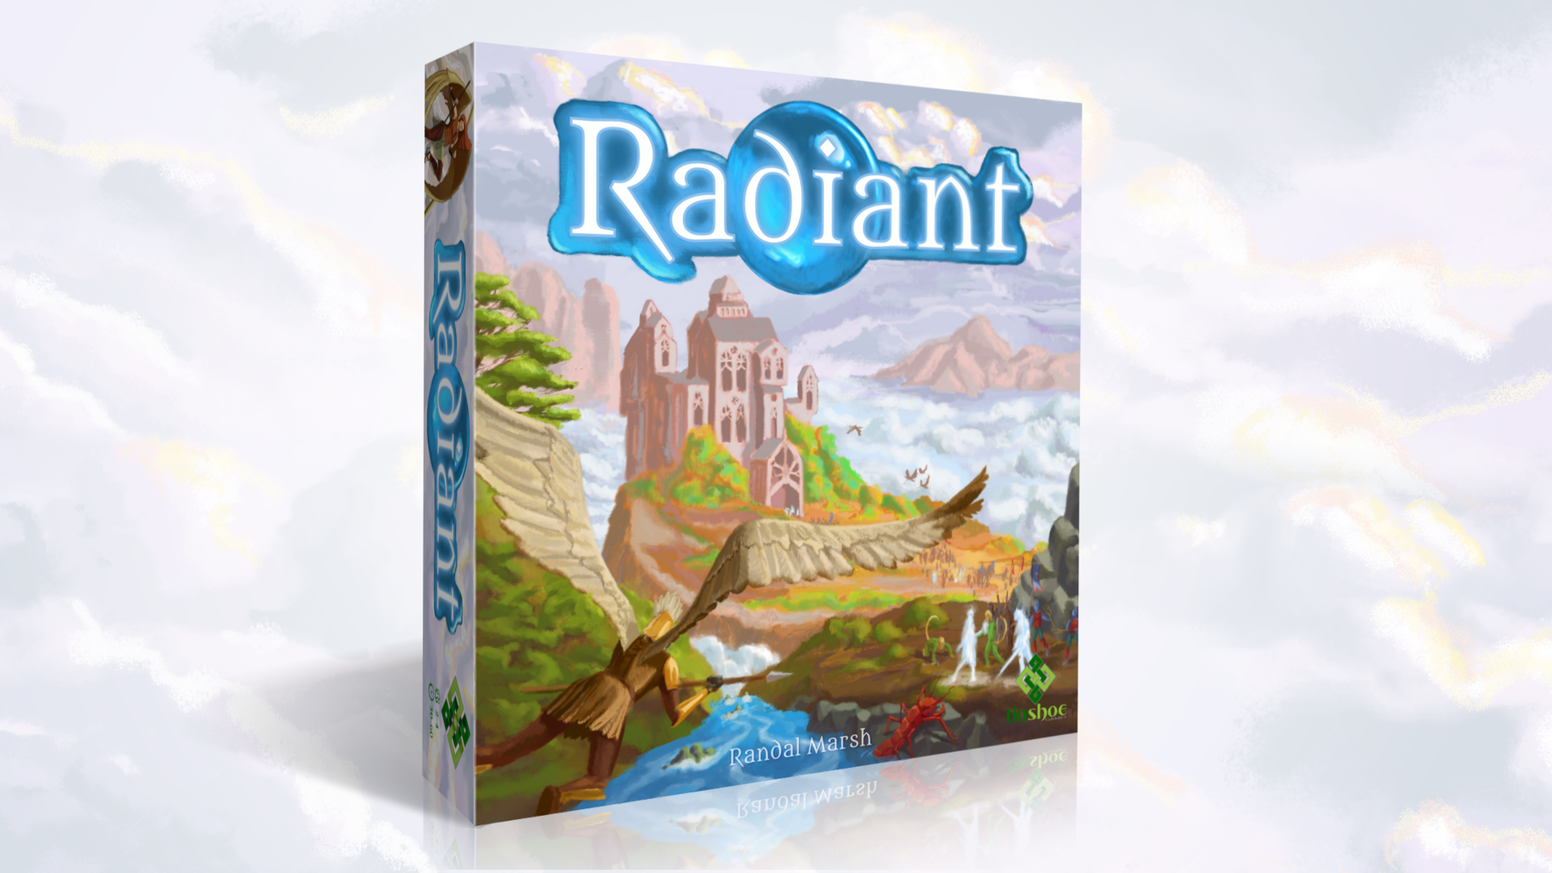 The Radiant Cycle has turned again—the War of Three Ages is upon us. Control the beautiful land of Perim with trick-taking battles.